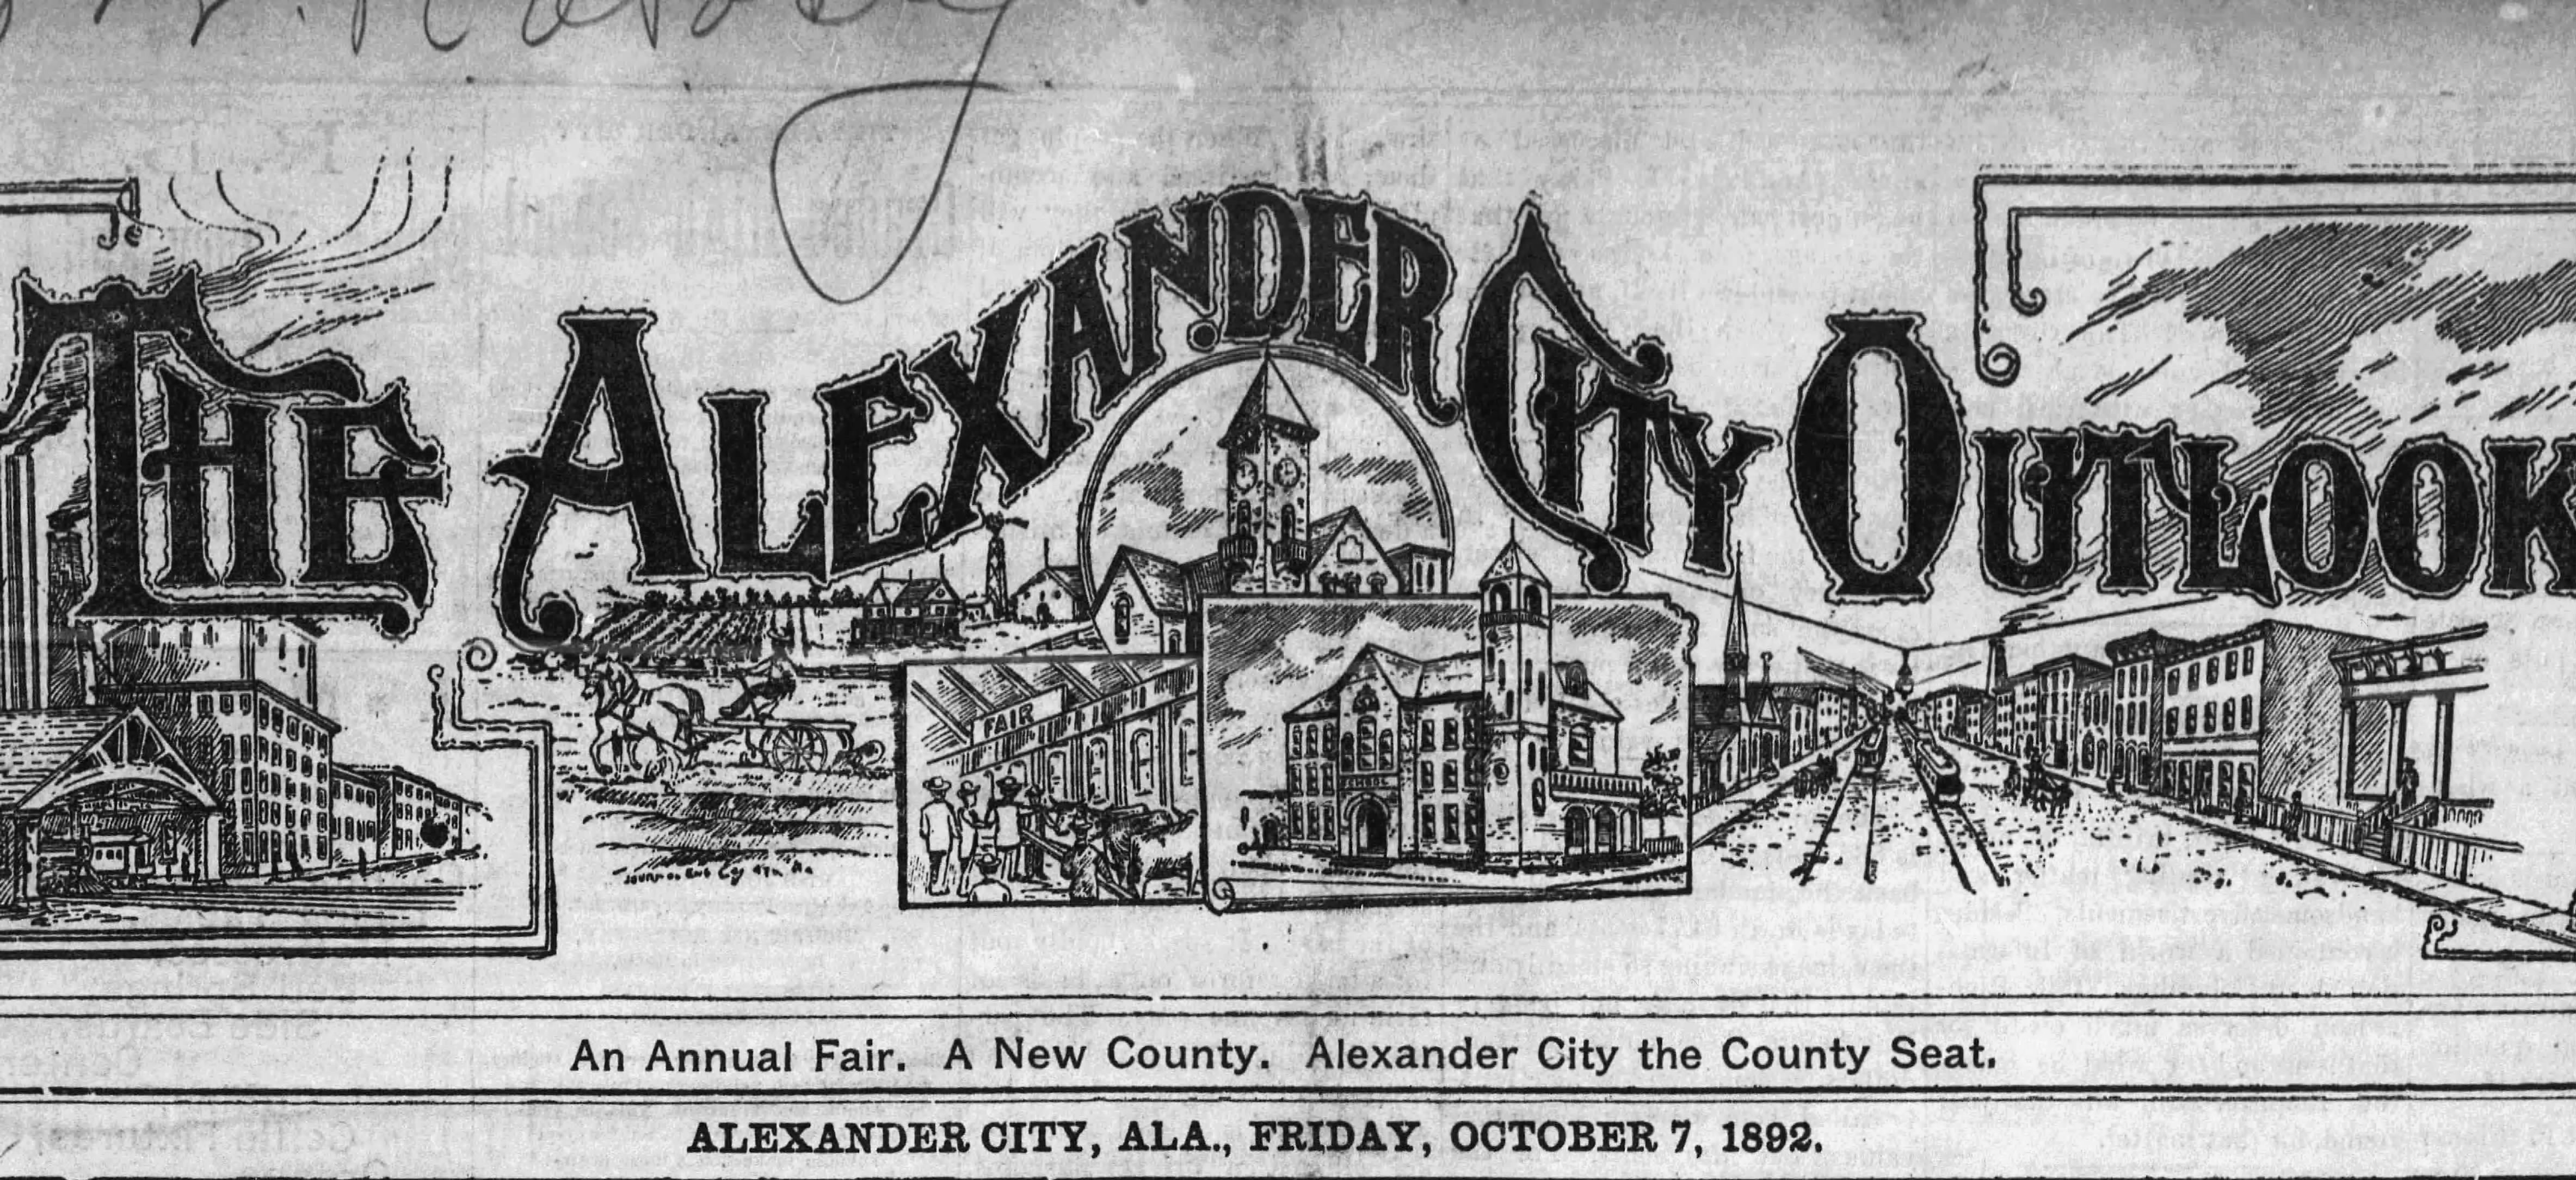 Patron - News notes Transcribed From The Alexander Outlook, Alexander City, Alabama, Oct 7, 1892, reveal much about the people